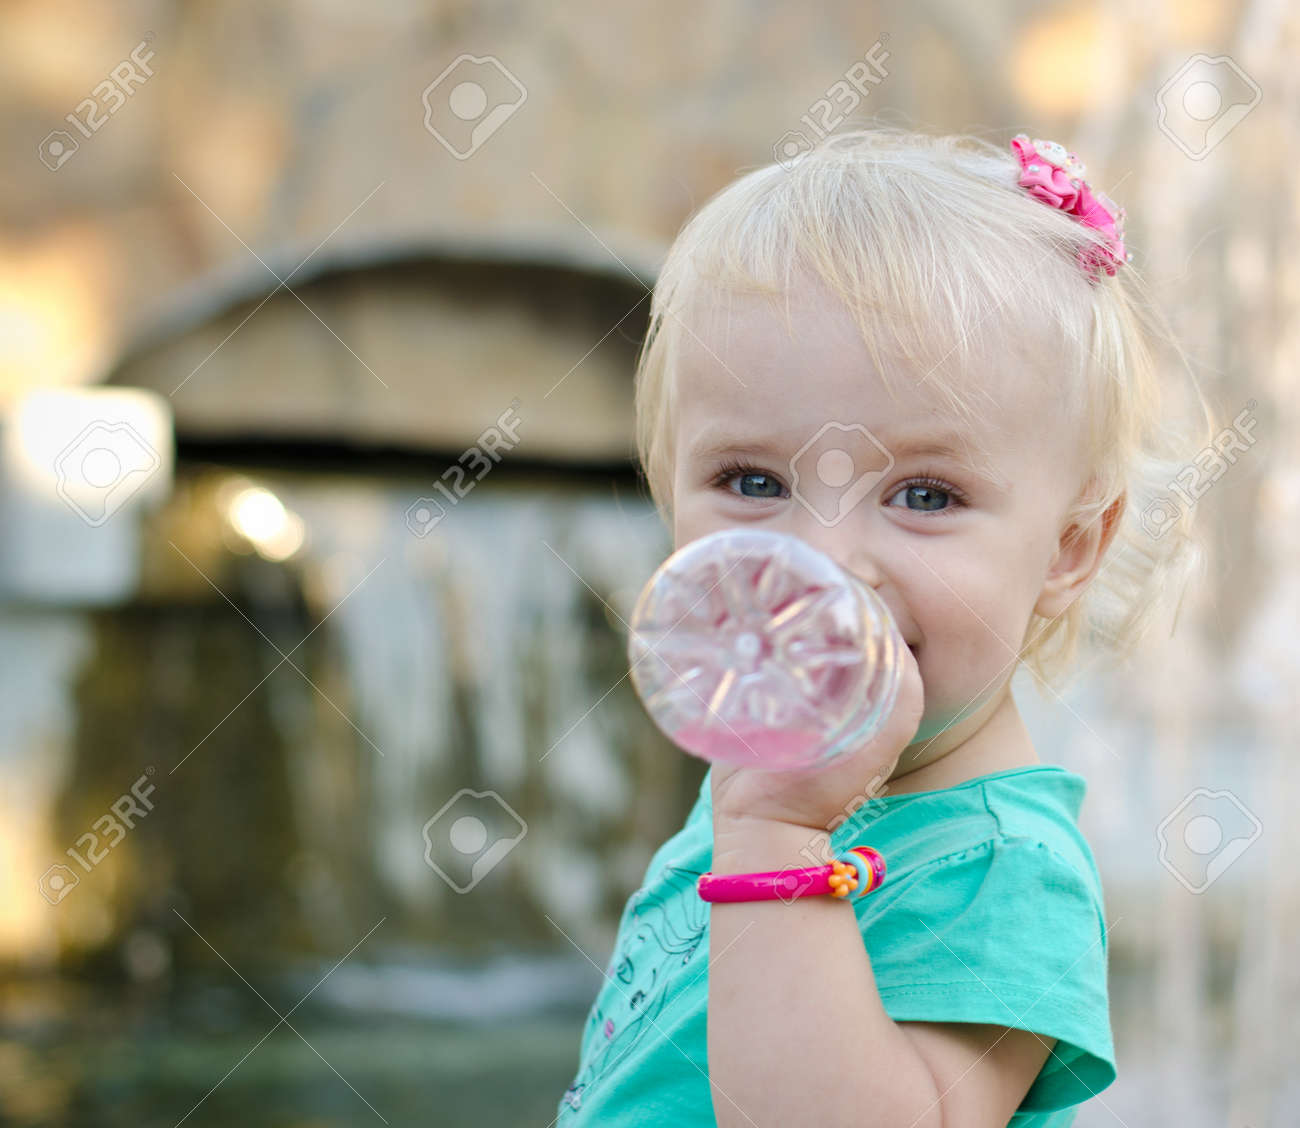 Emotional Little Girl with funny Face Expression - 25546142